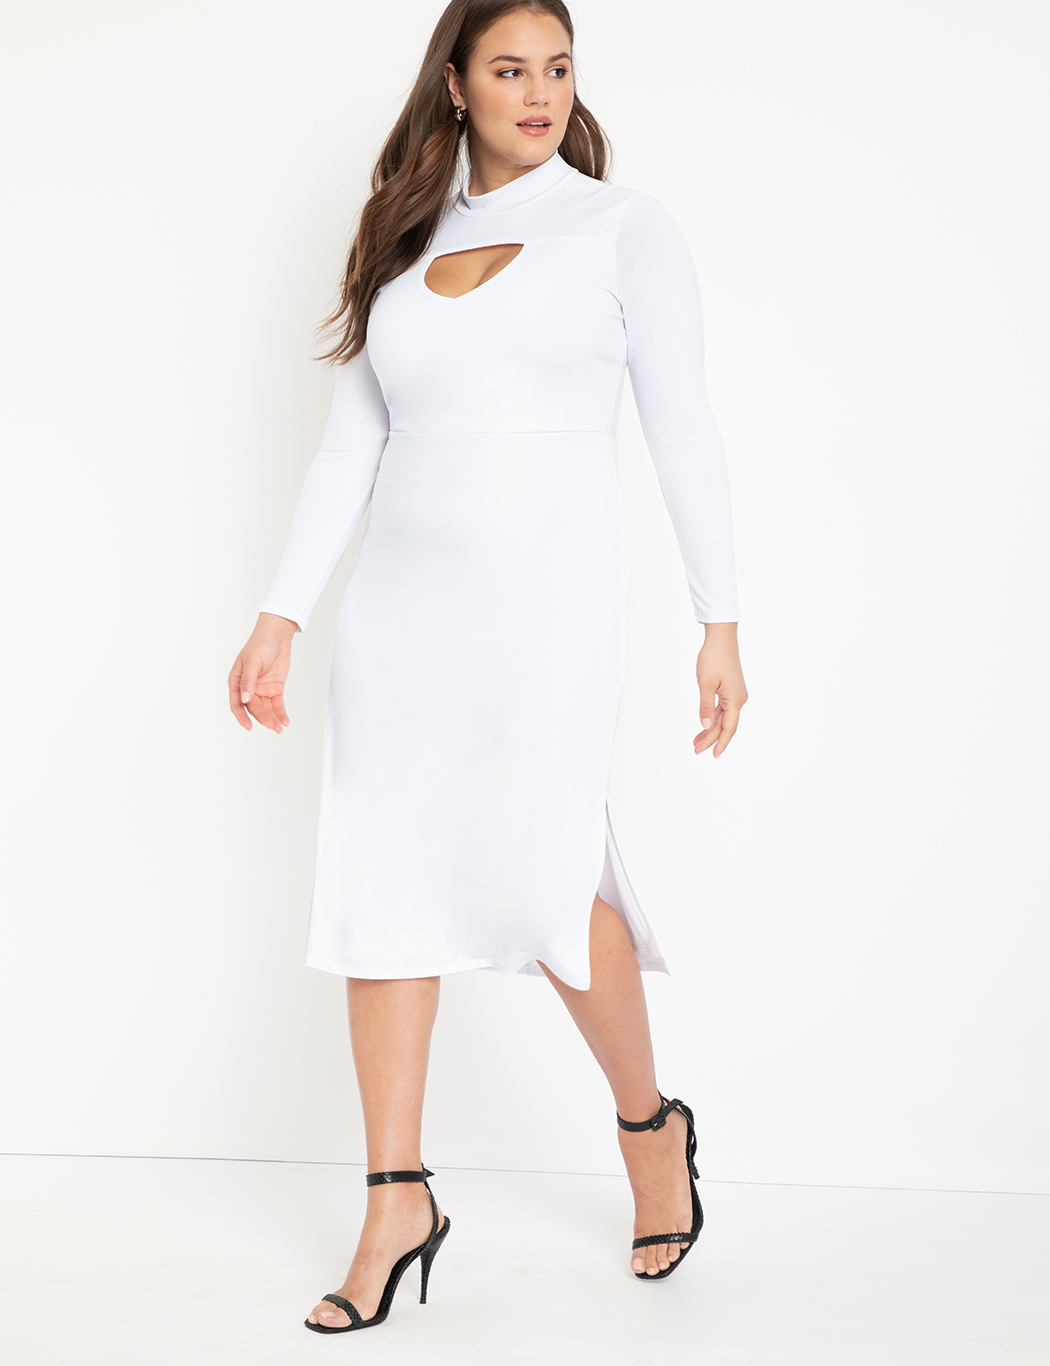 Turtleneck Dress with Cutout